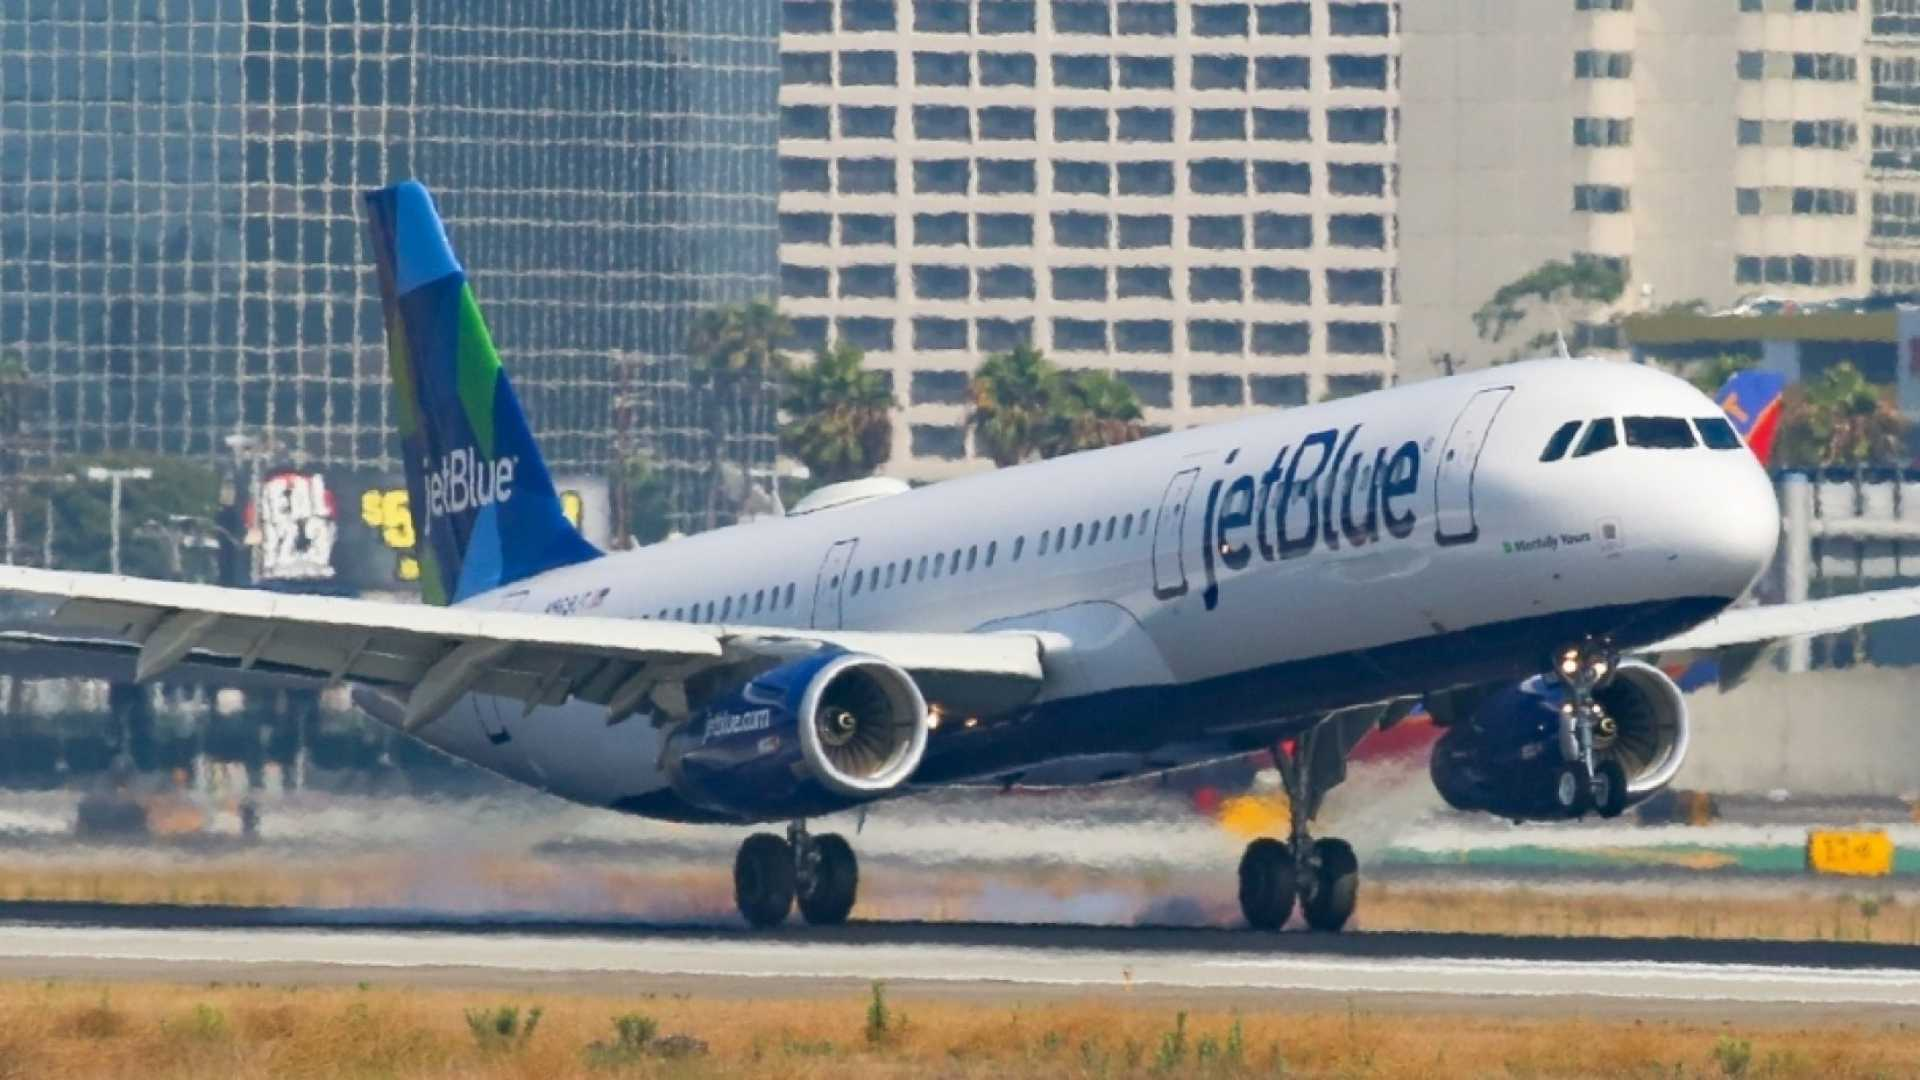 JetBlue Is Delivering 1,050 New York Pizzas to Los Angeles Next Week. It's a Marketing Stunt, and It's Pretty Darn Smart